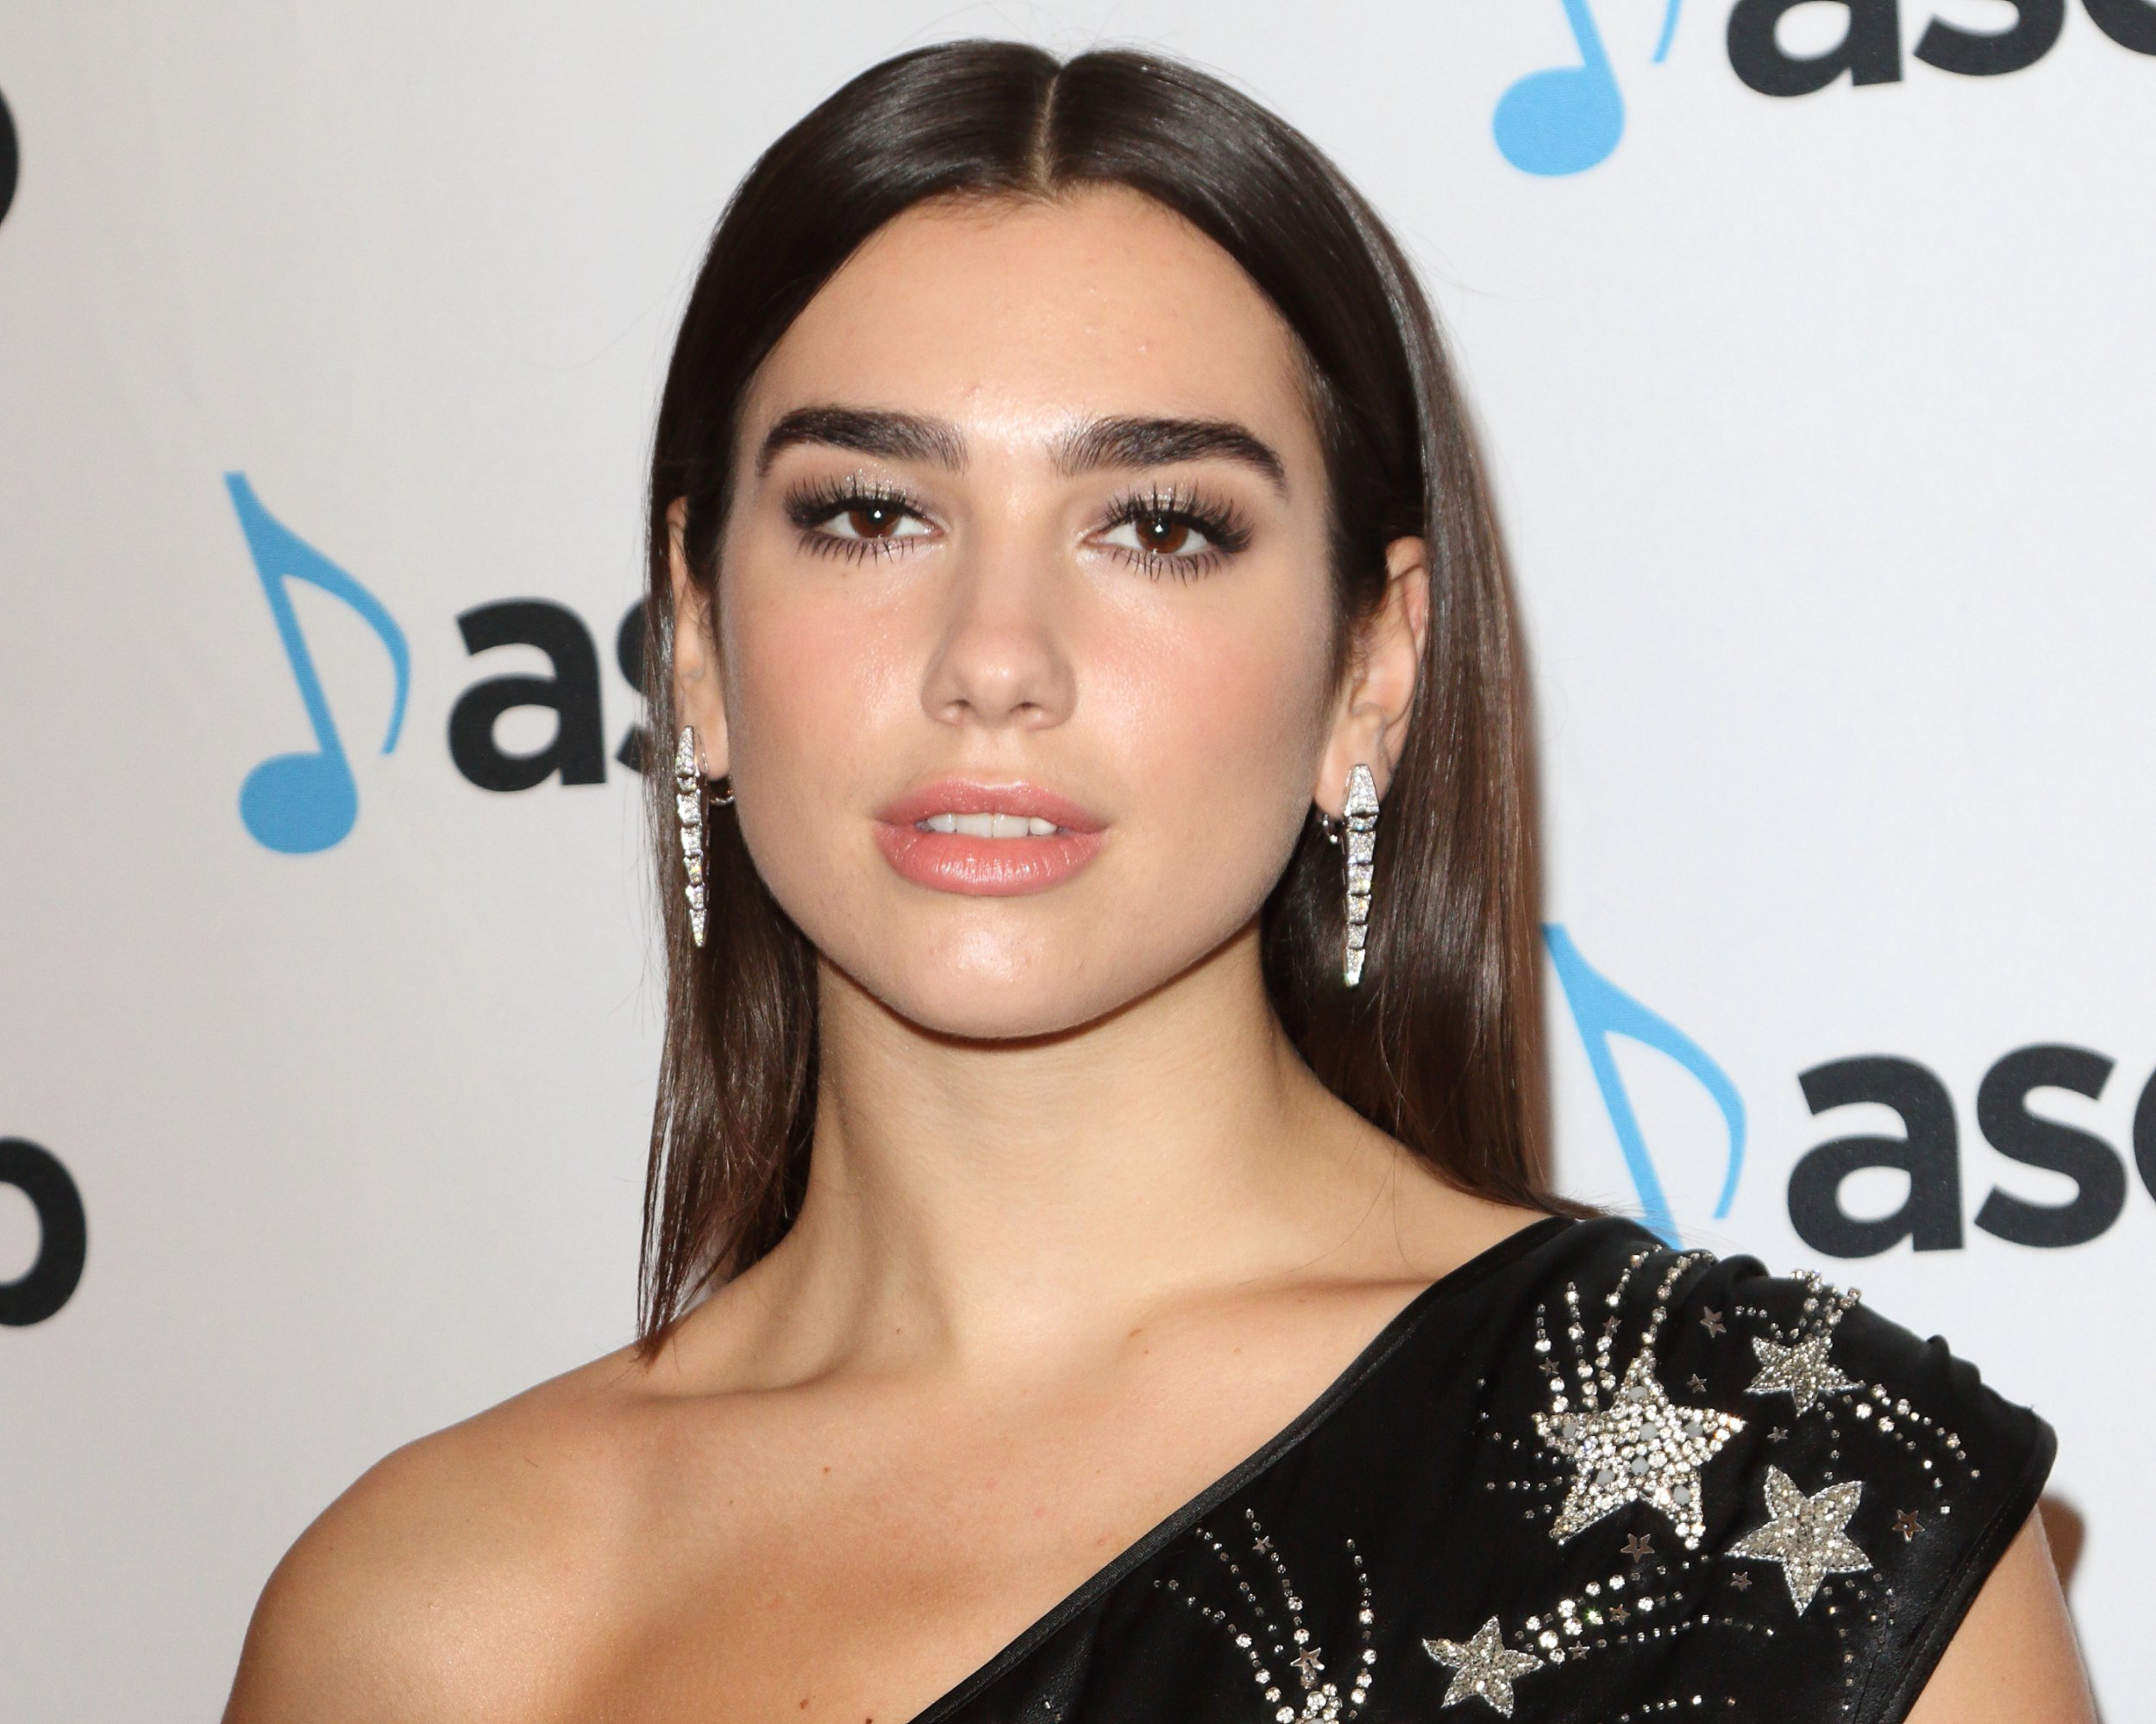 Beautiful Dua Lipa Pics - Dua Lipa Net Worth, Pics, Wallpapers, Career and Biography